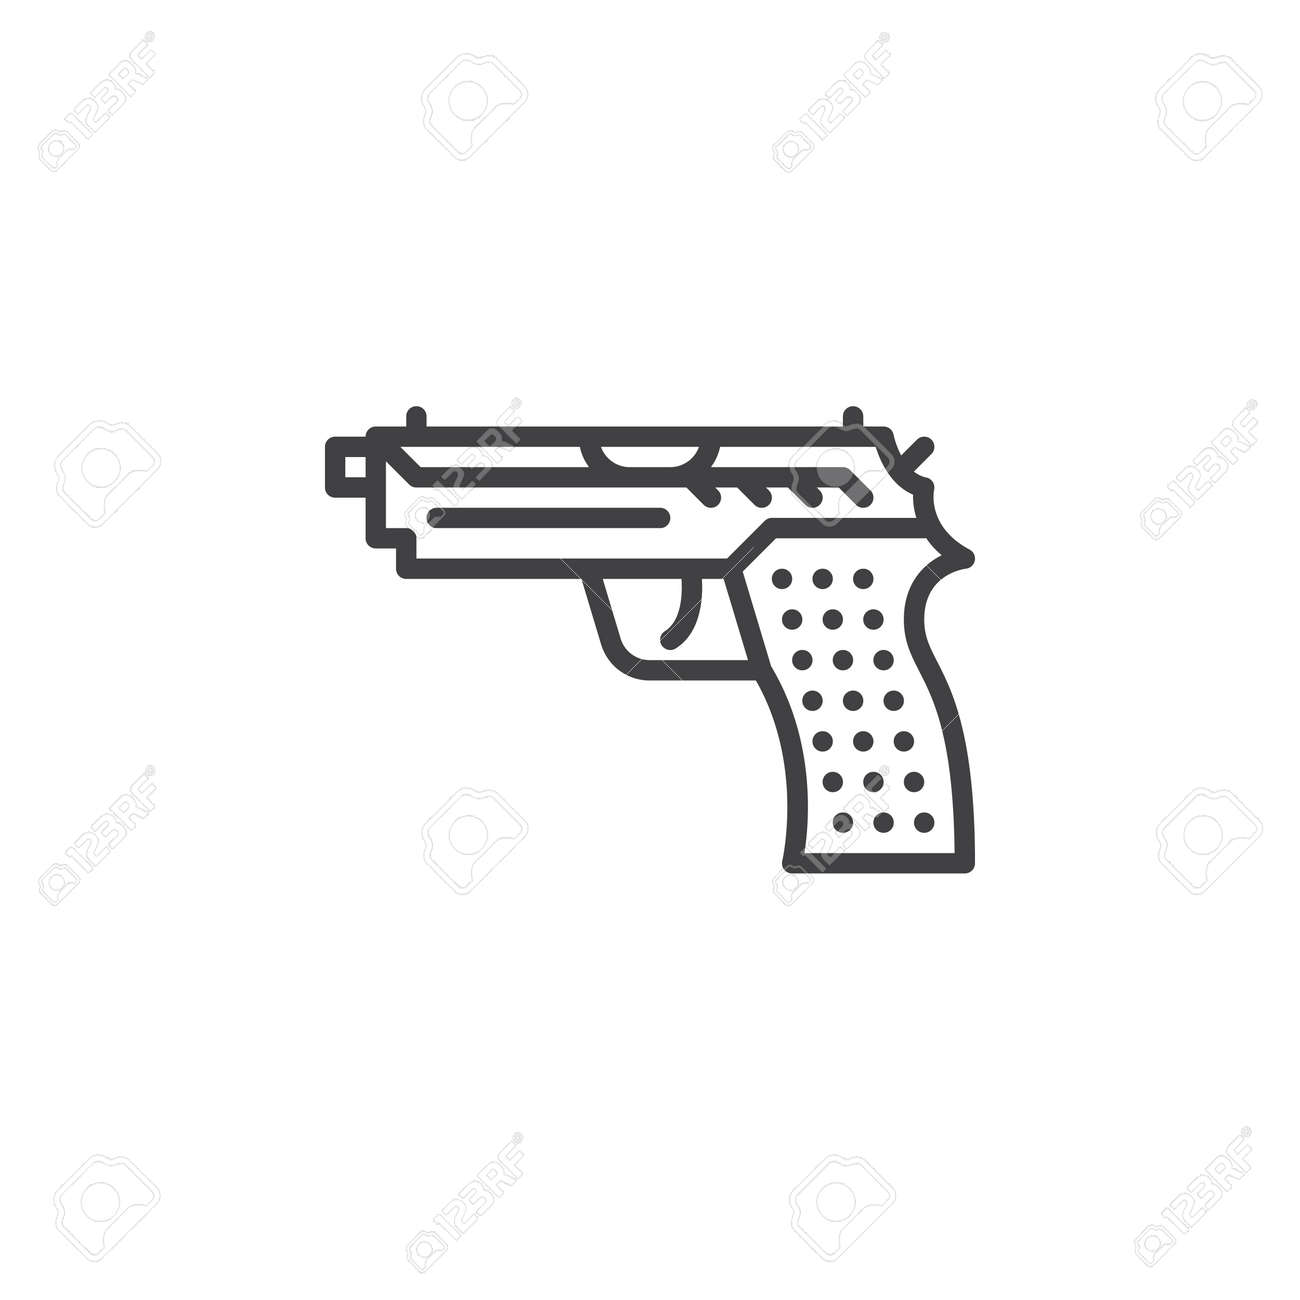 Pistol text symbol gallery symbol and sign ideas gun pistol line icon outline vector sign linear pictogram gun pistol line icon outline vector sign biocorpaavc